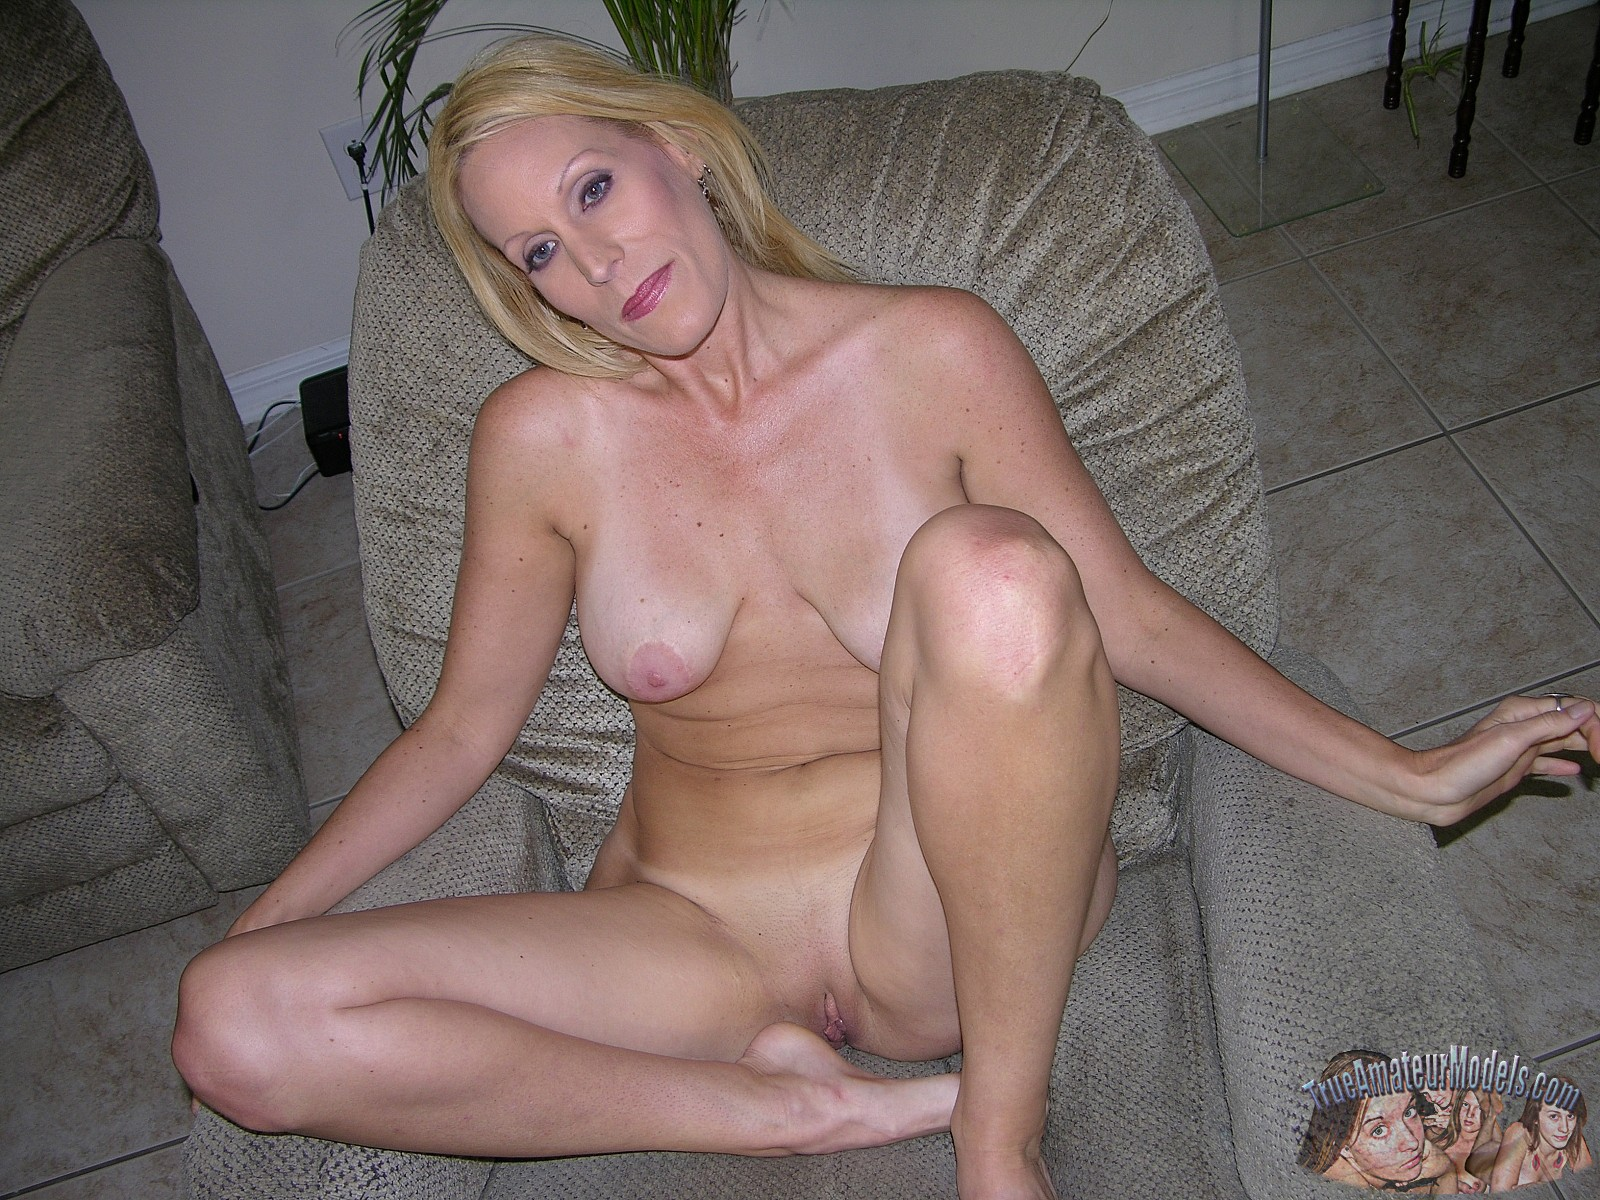 Milf pinched tit fingered video